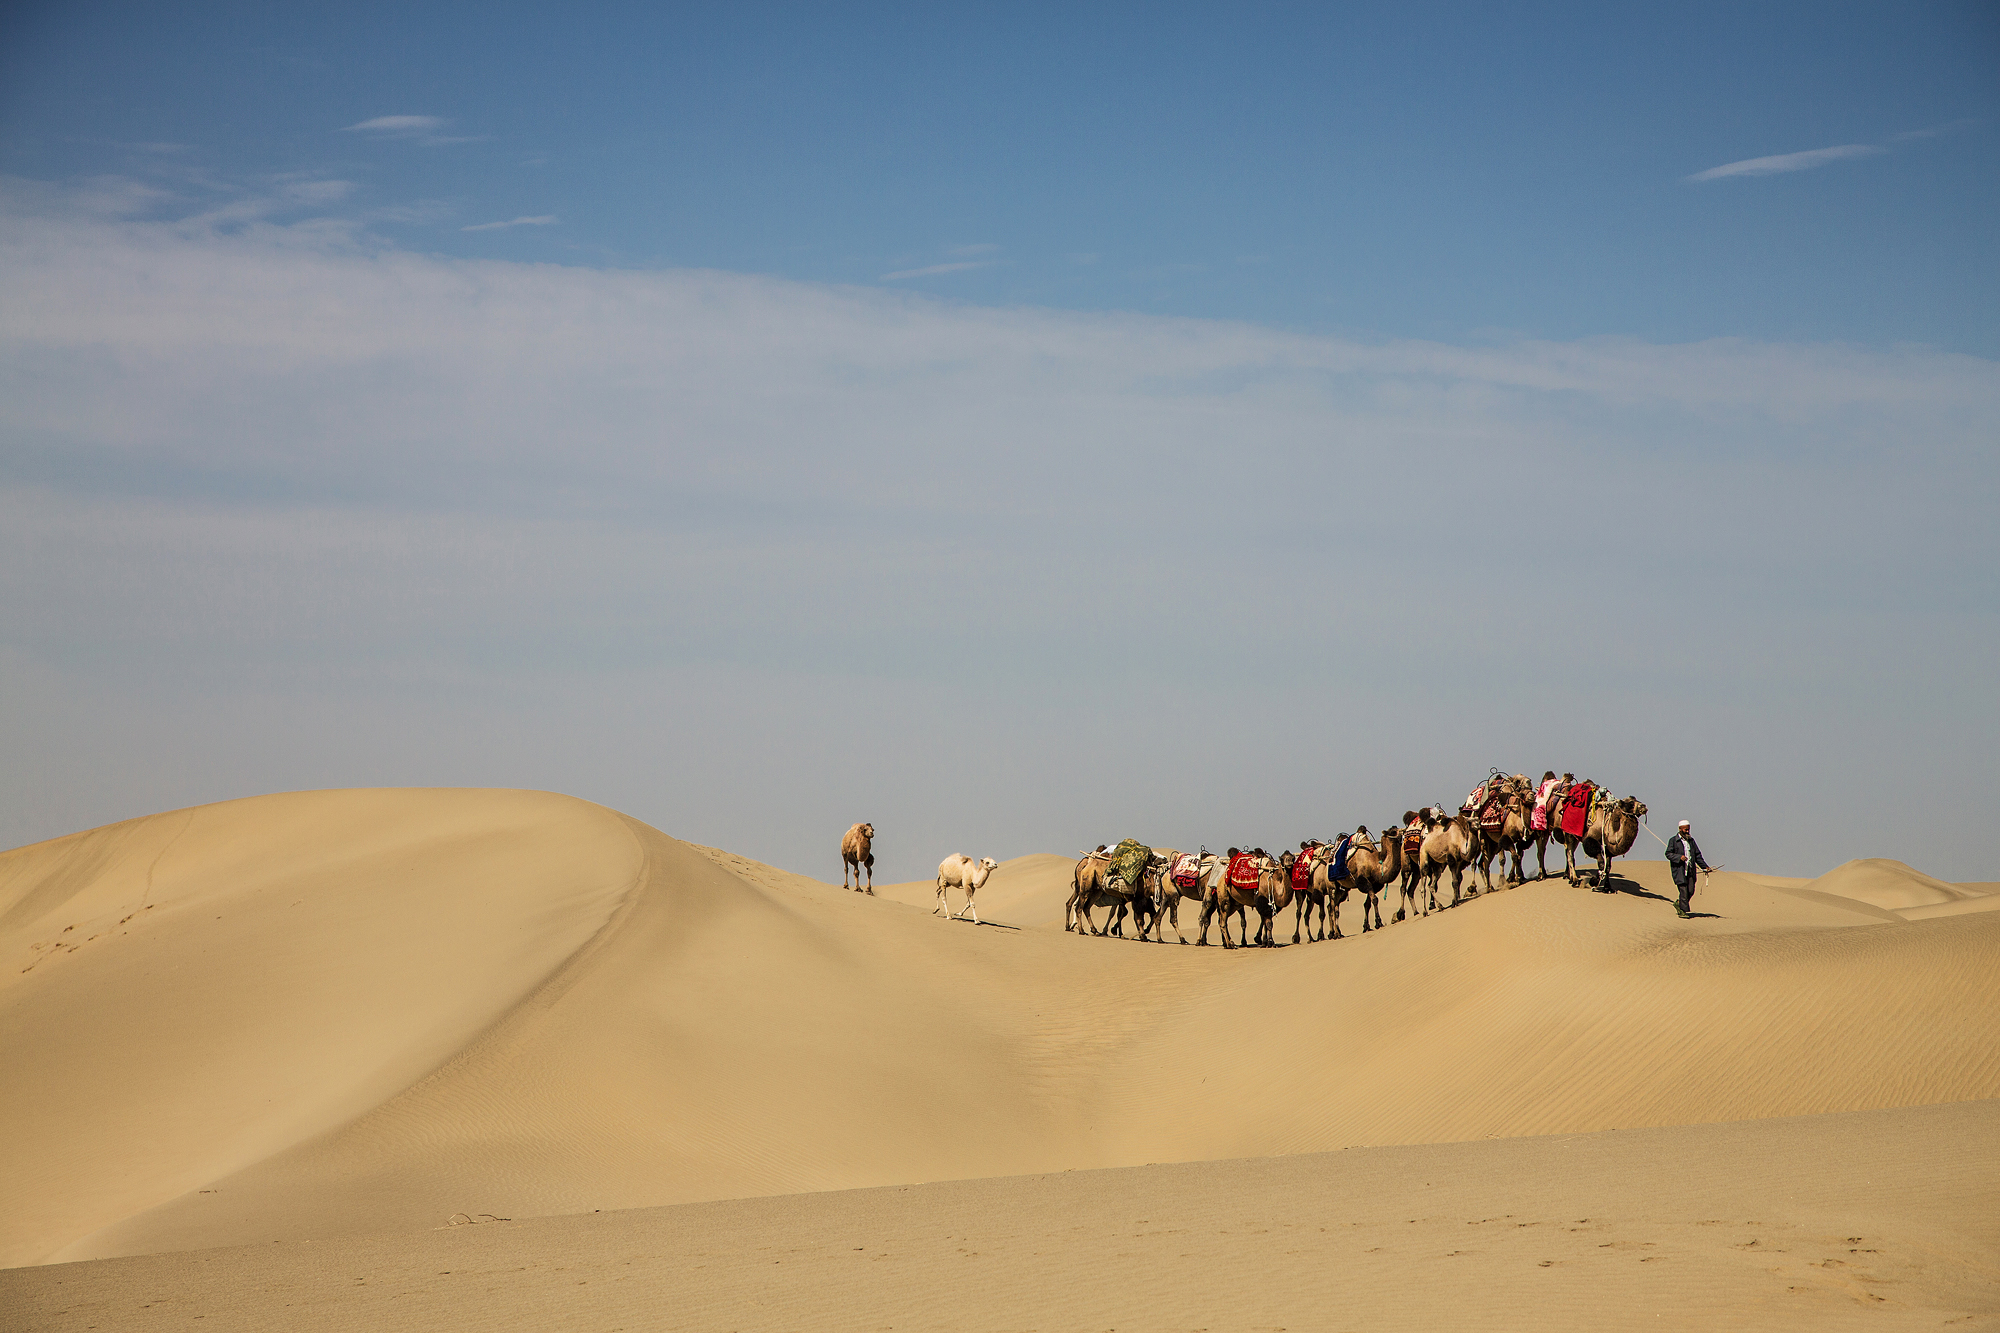 On the way in the Taklamakan Desert, China